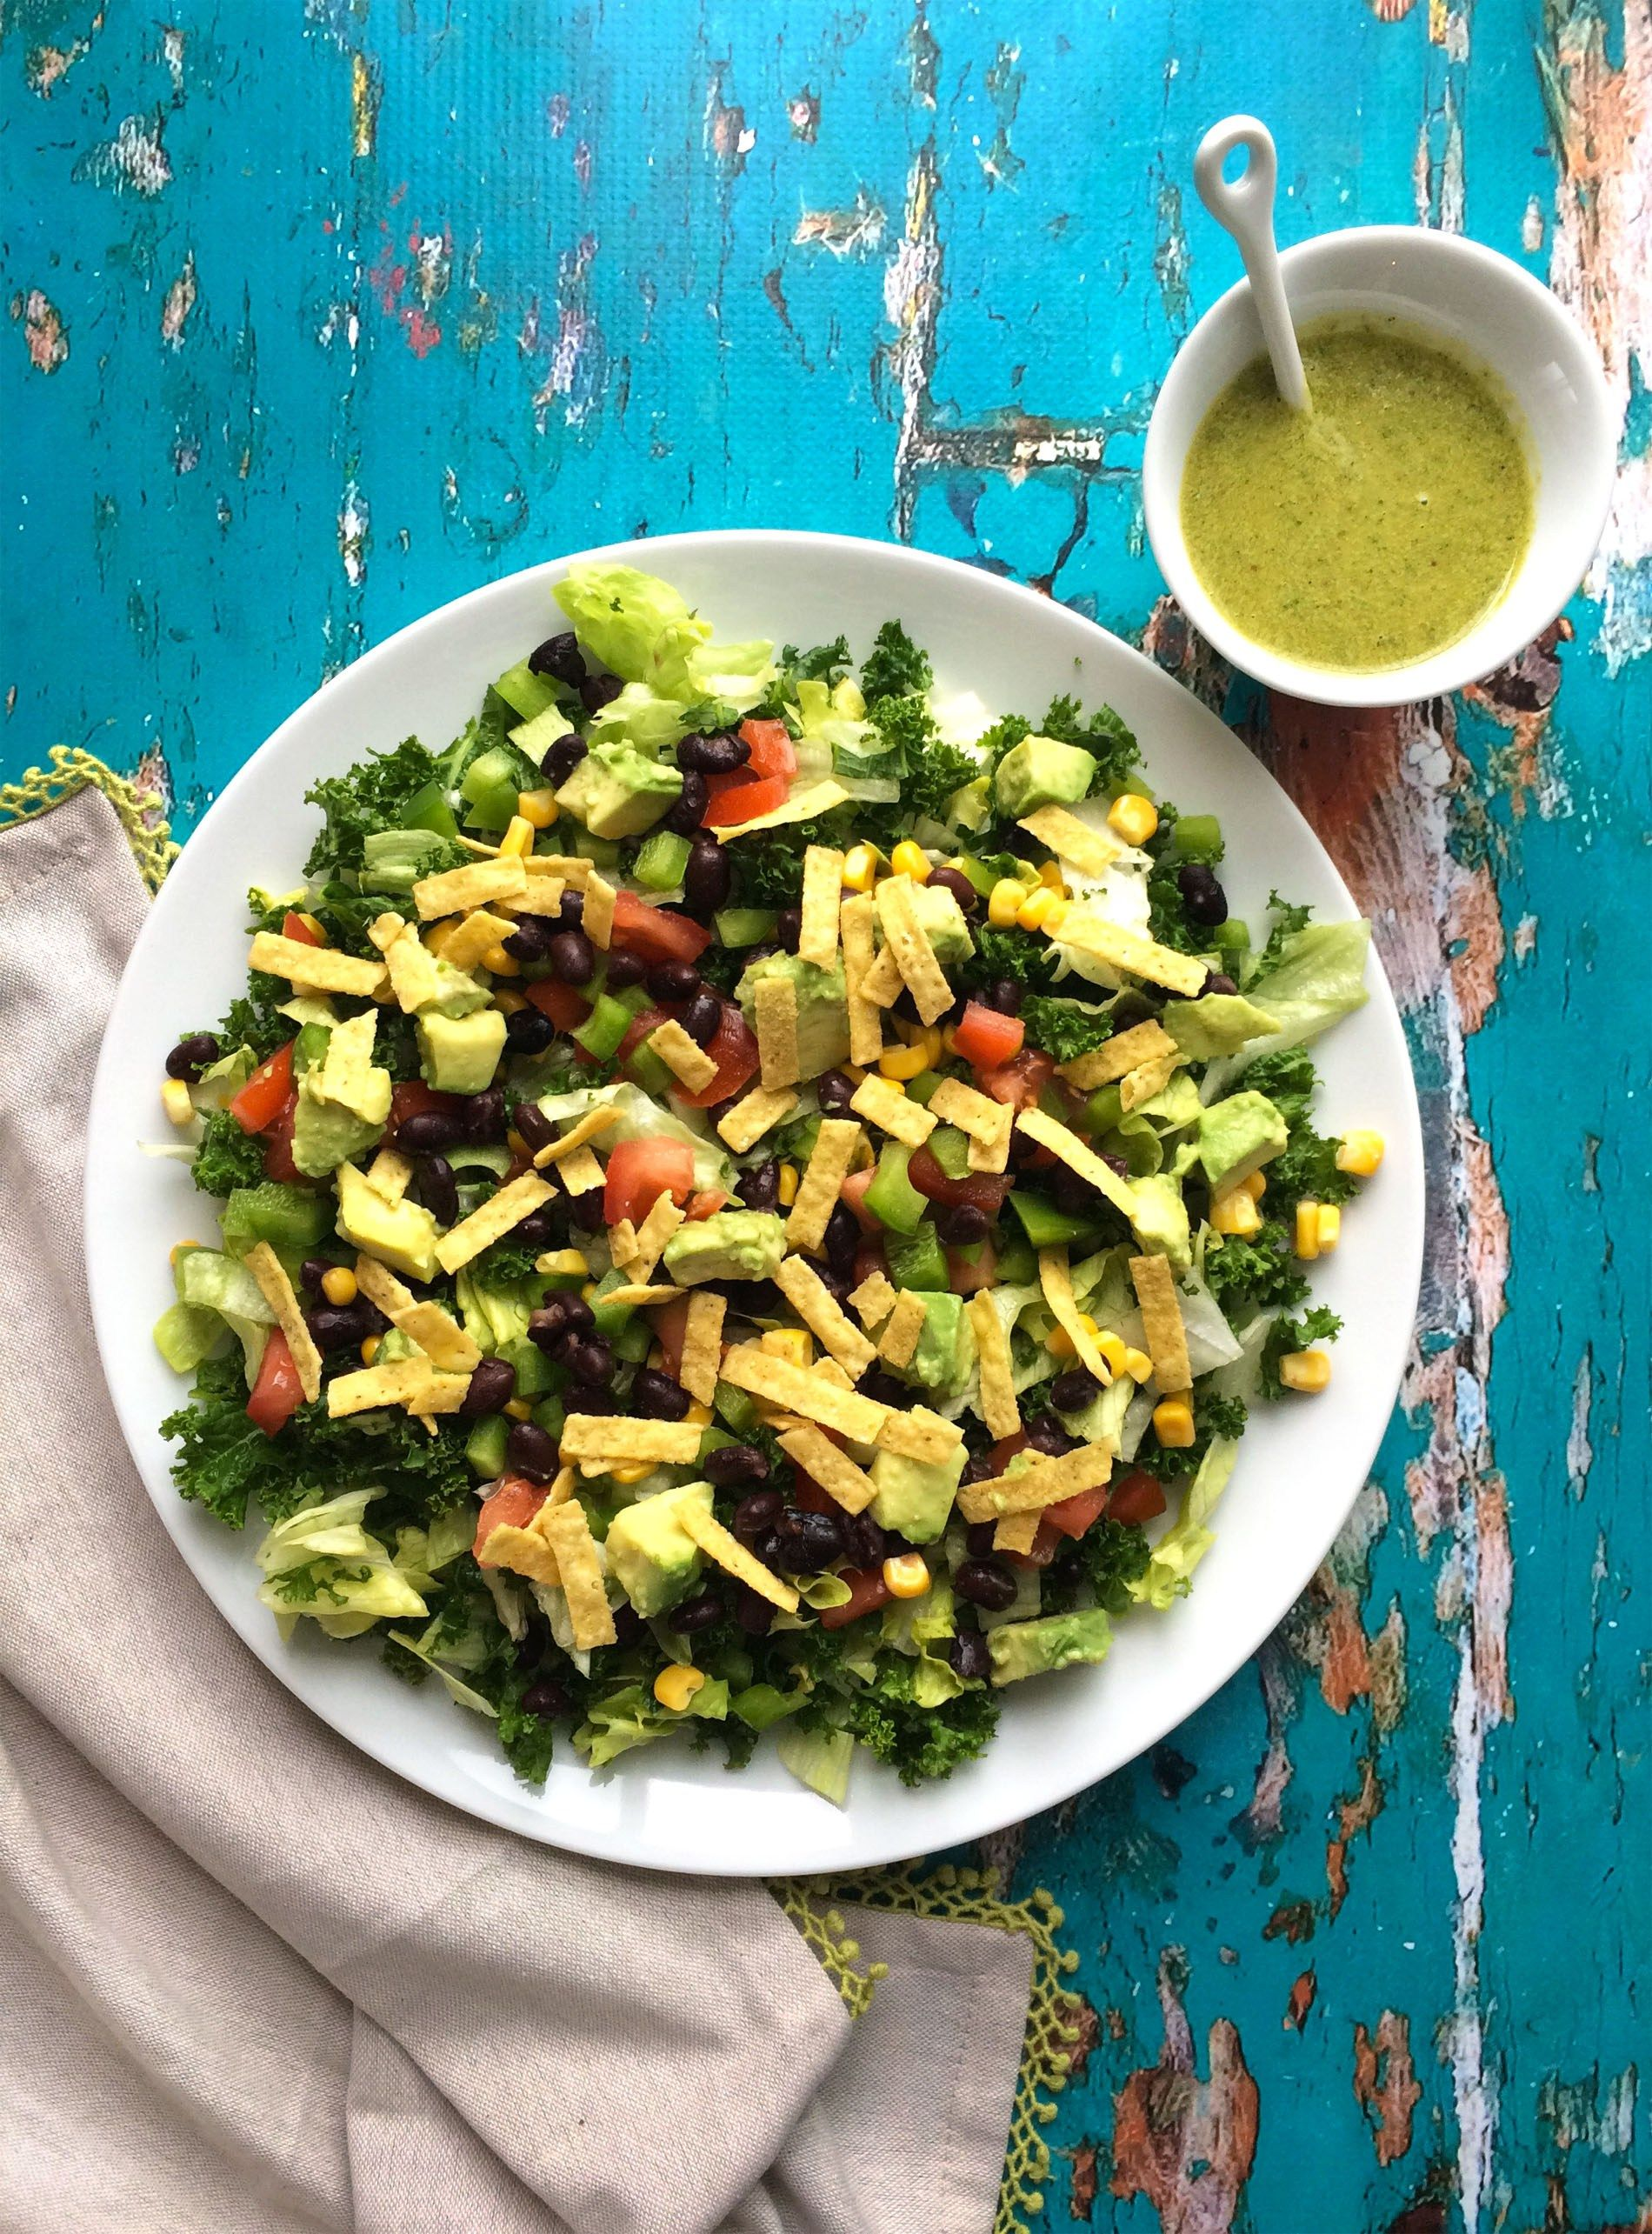 Mexican Salad With Kale And Santa Fe Dressing (Vegan +